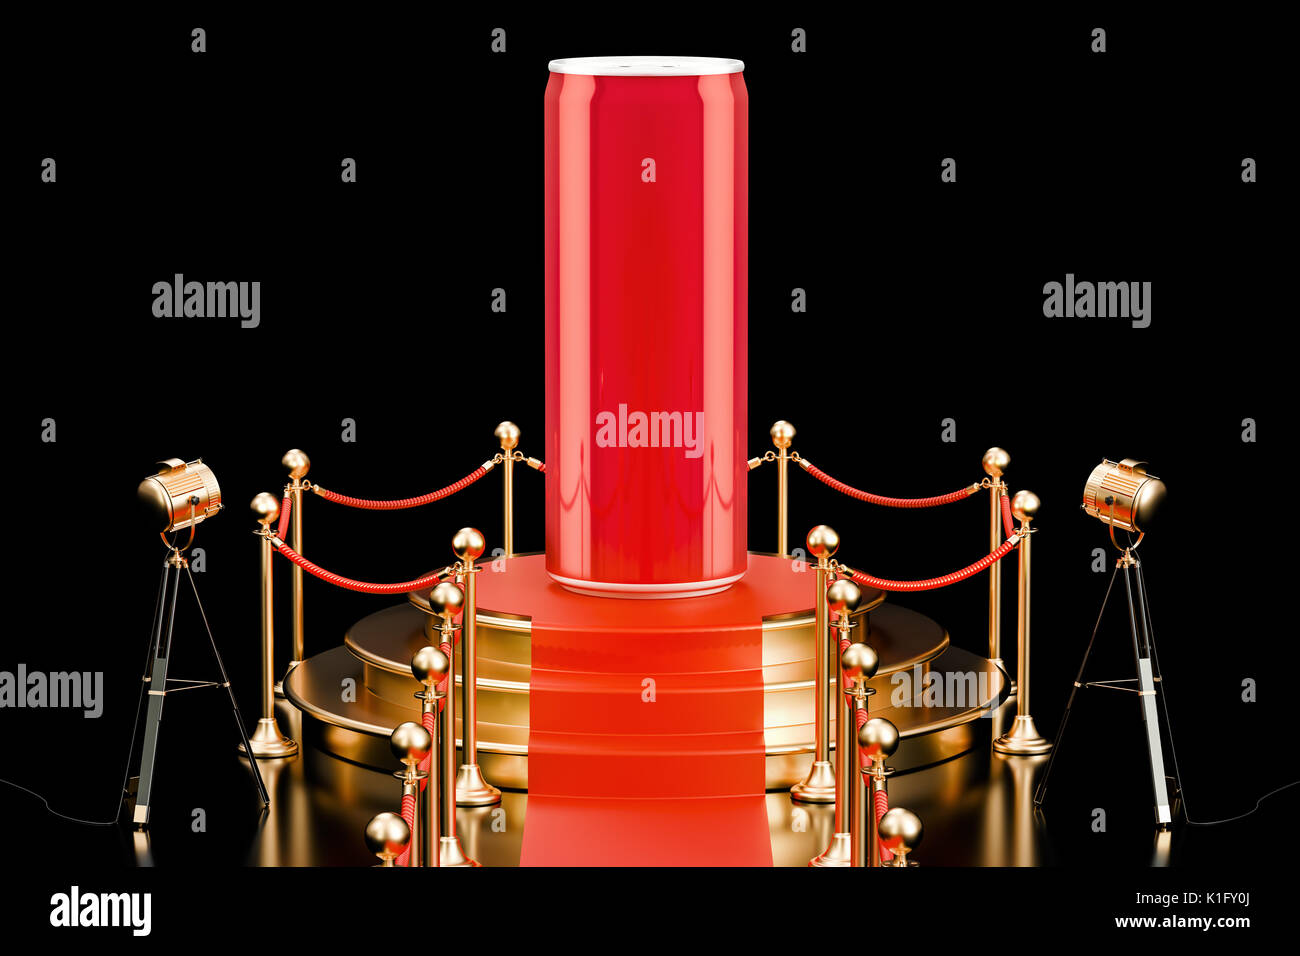 Podium with metallic drink can, presentation of new beverage concept. 3D rendering - Stock Image